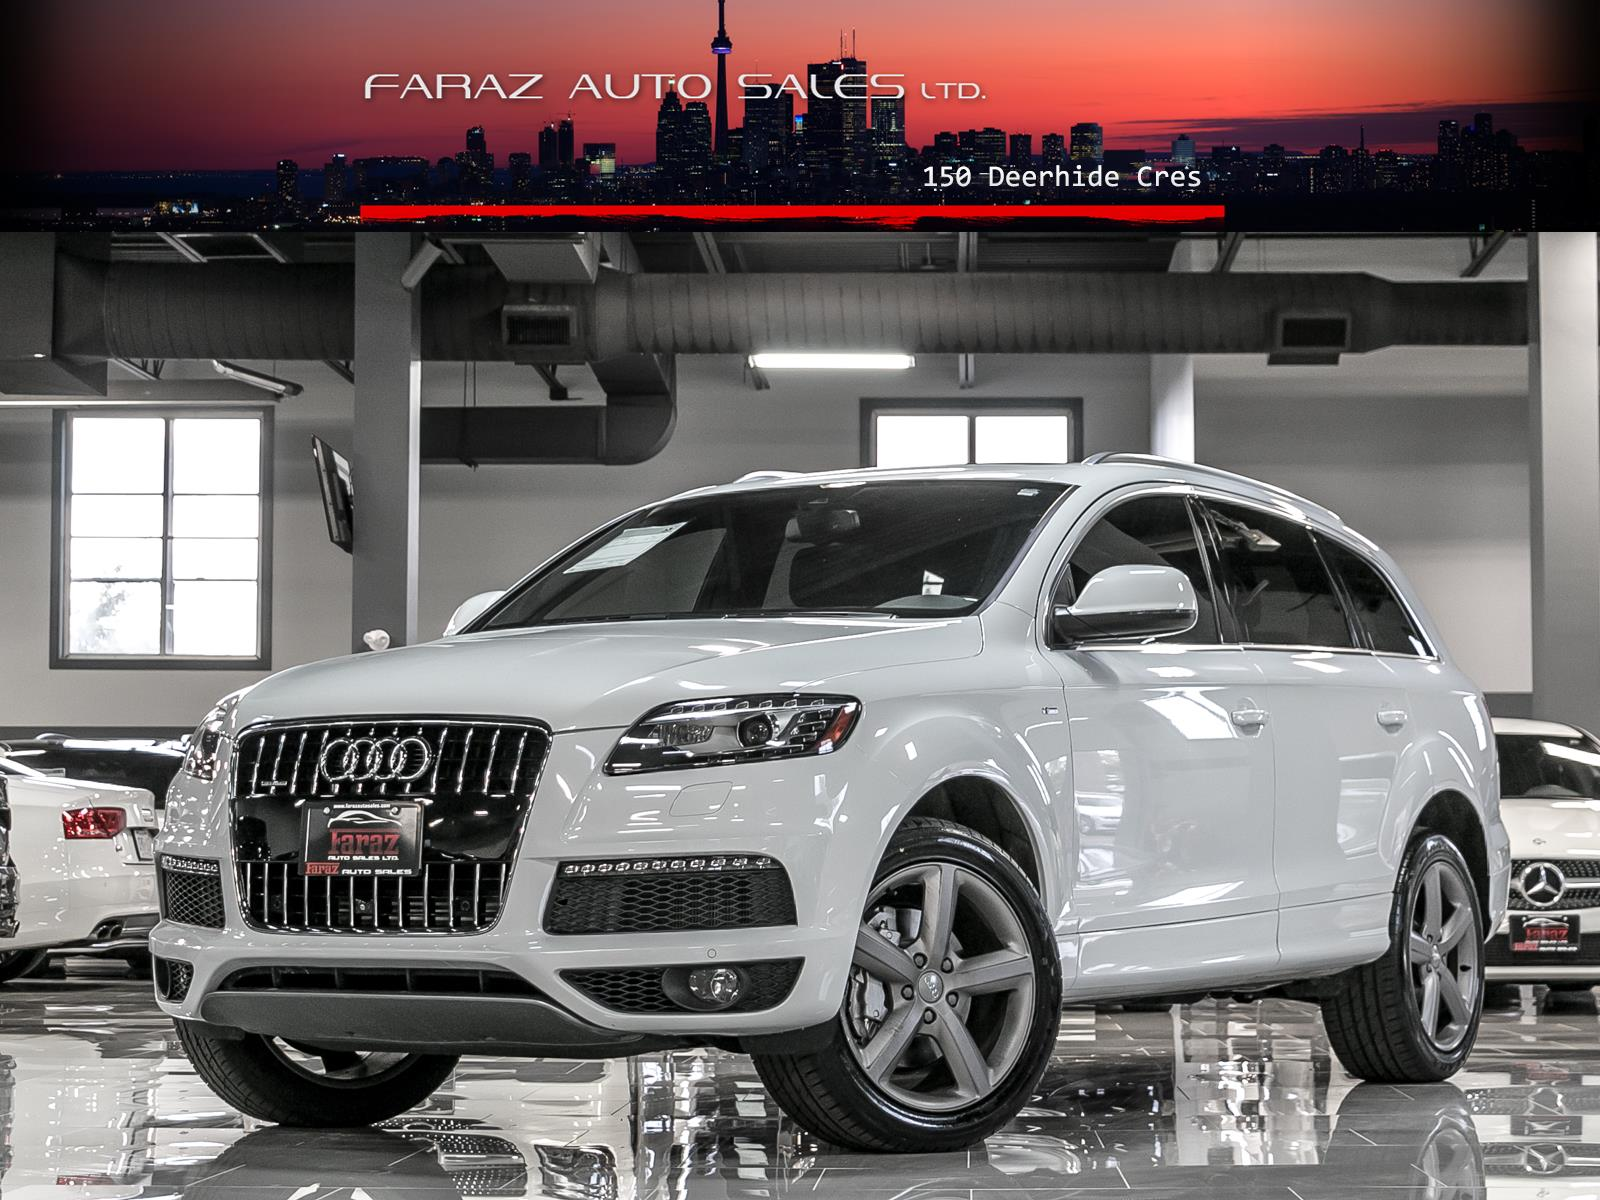 Audi Q Faraz Auto Sales Used Car For Sale - Used cars for sale audi q7